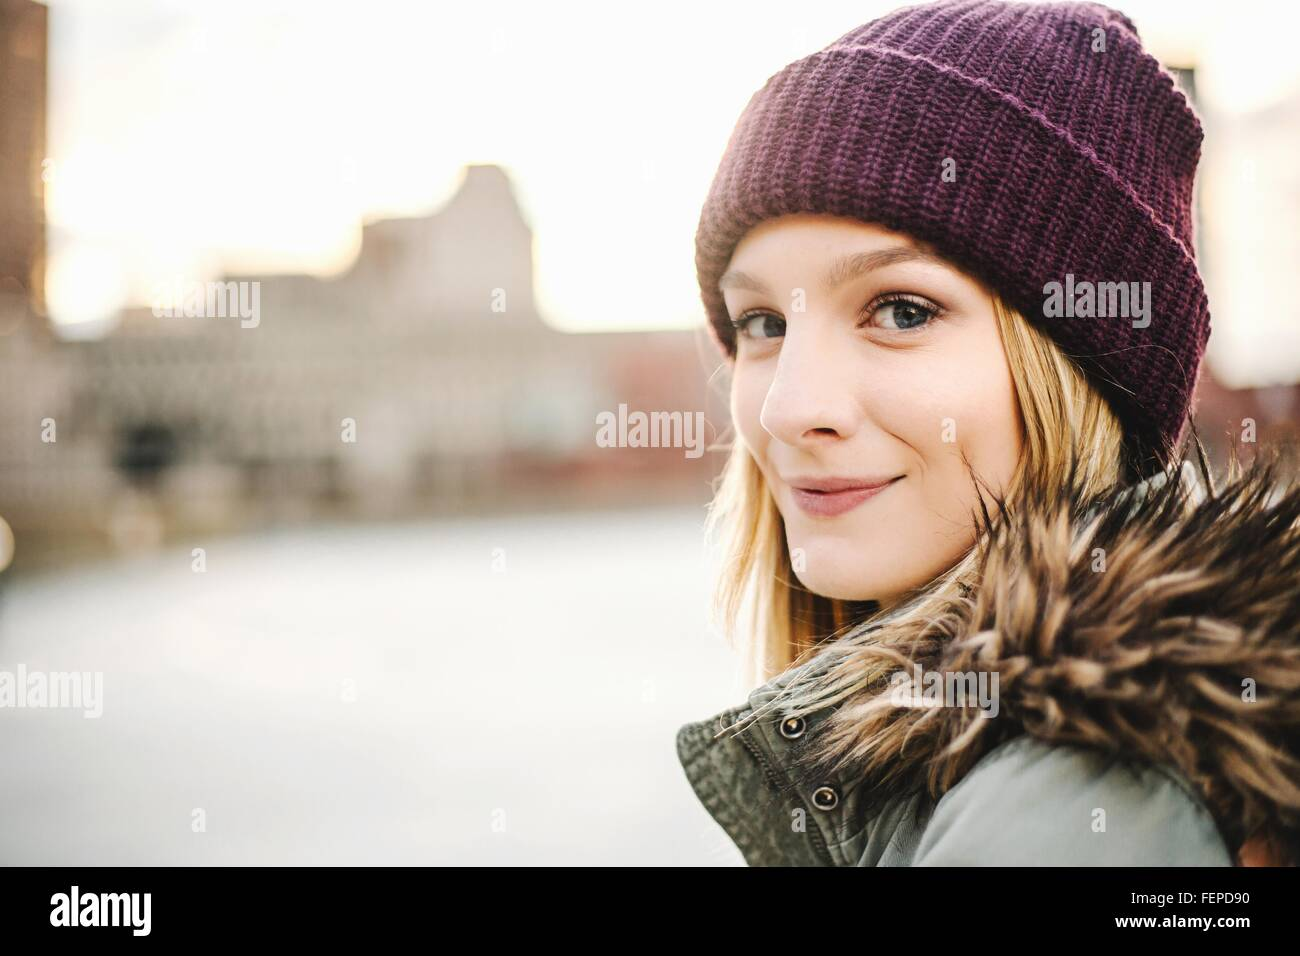 Portrait of young woman wearing hat tricoté et fur hood Banque D'Images